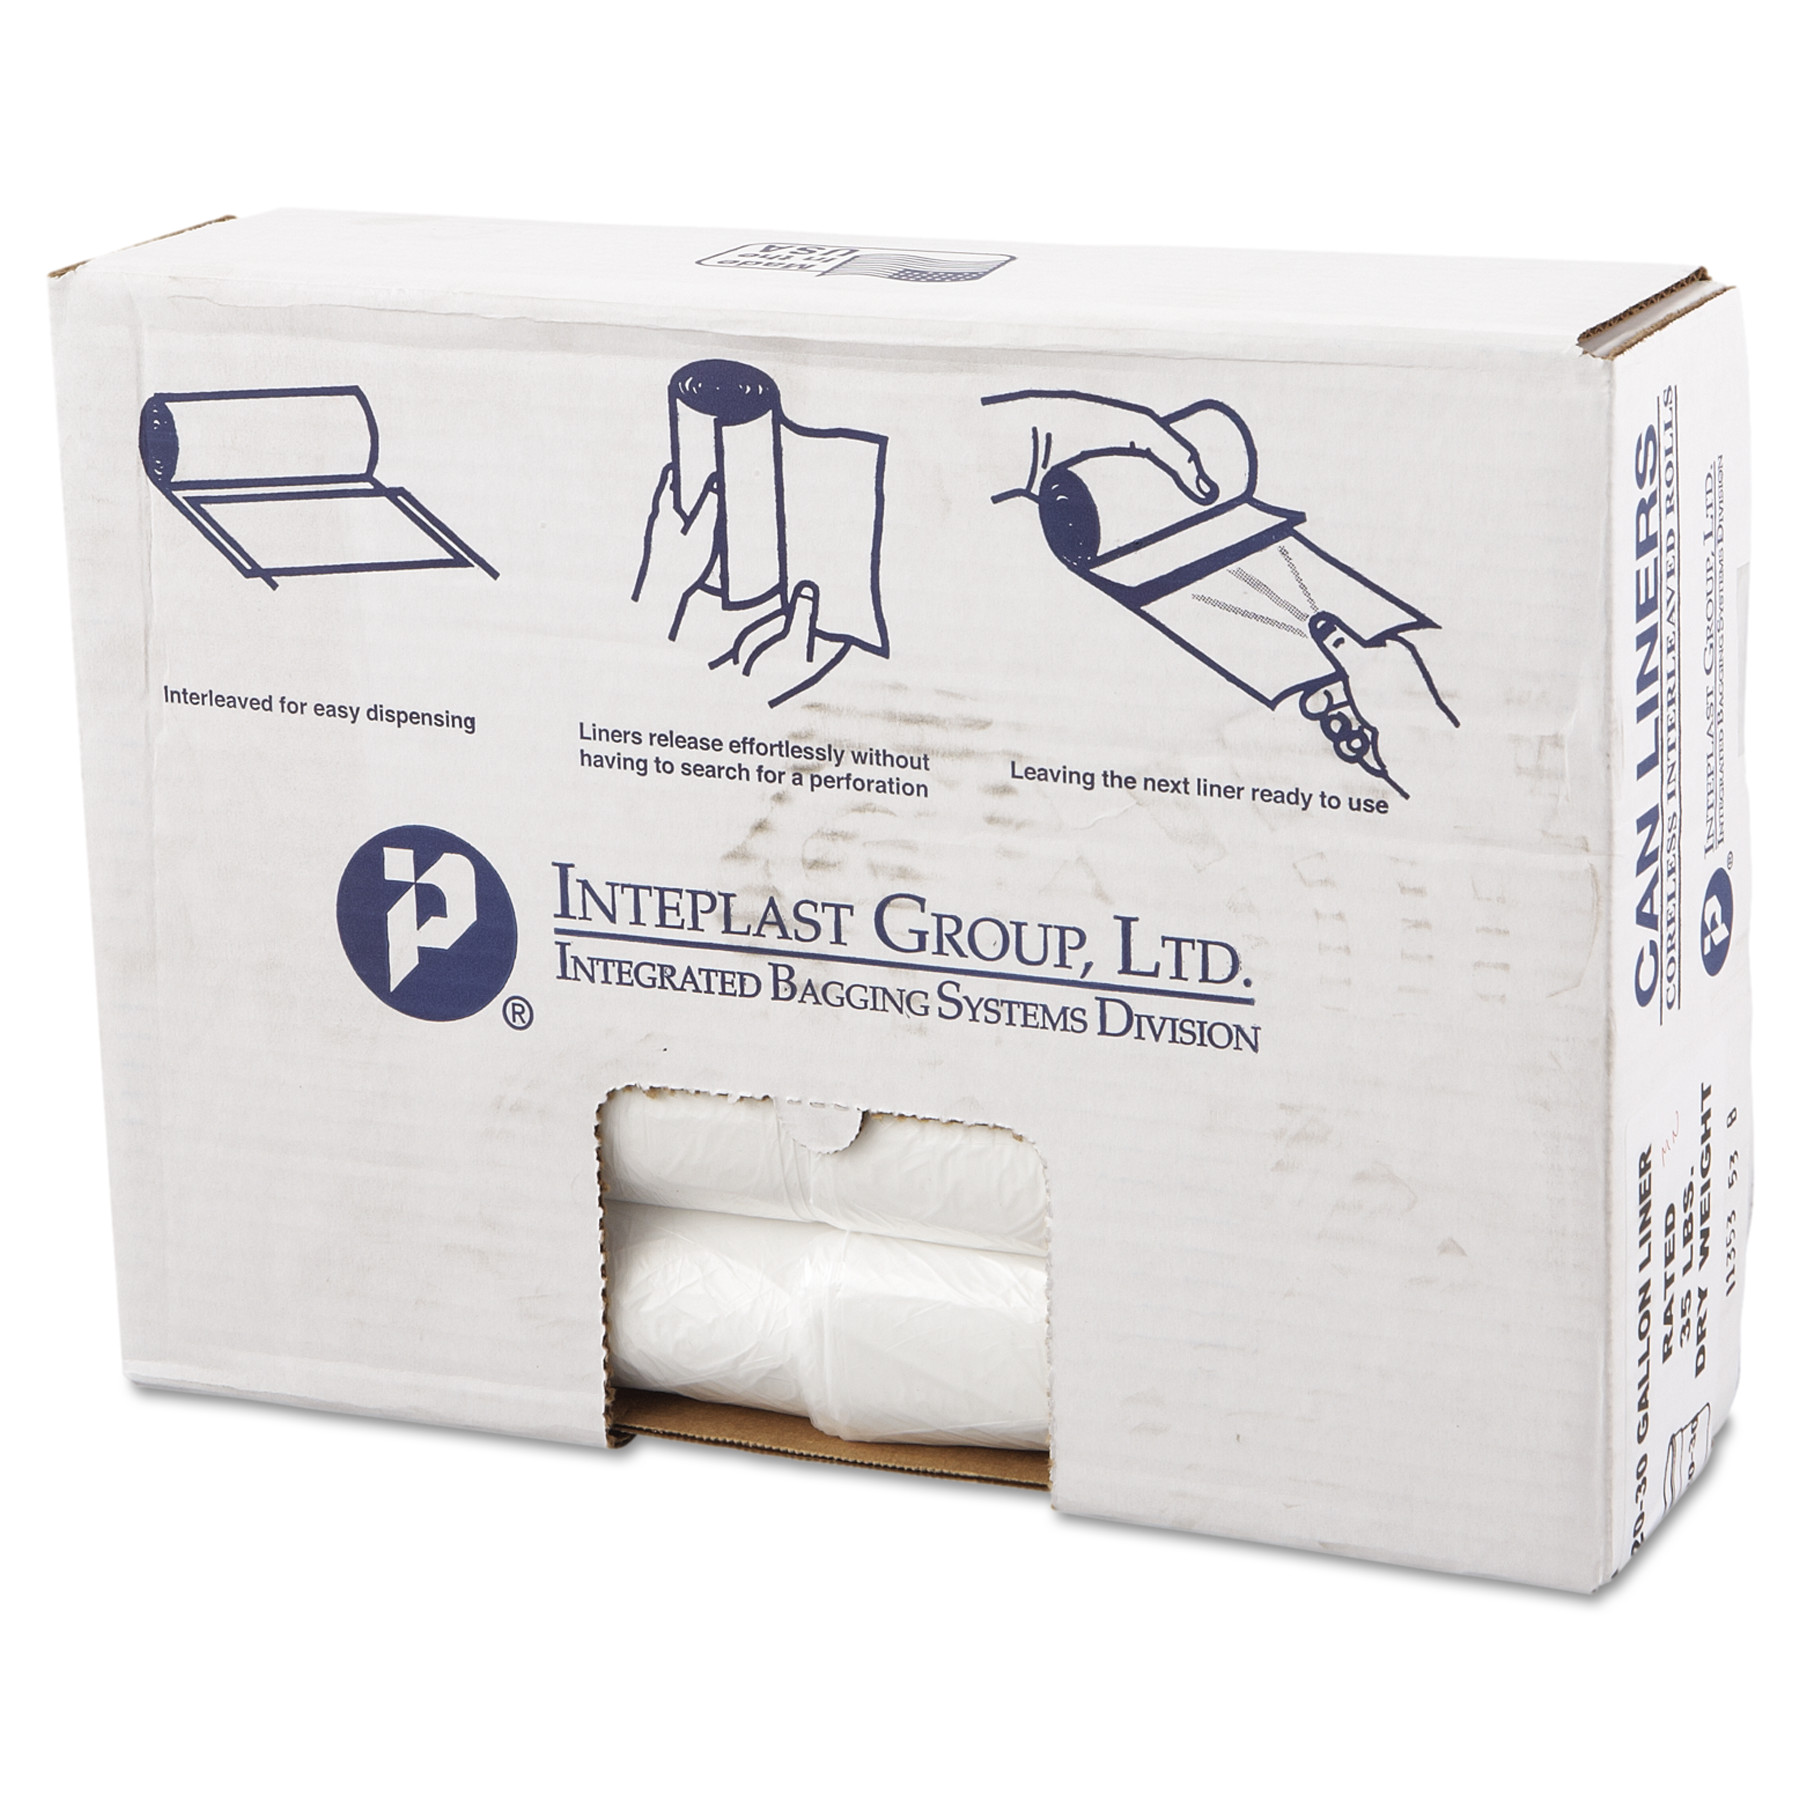 Inteplast Group High-Density Trash Bag, 30 x 36, 30gal, 11mic, Clear, 25/Roll, 20 Rolls/Carton